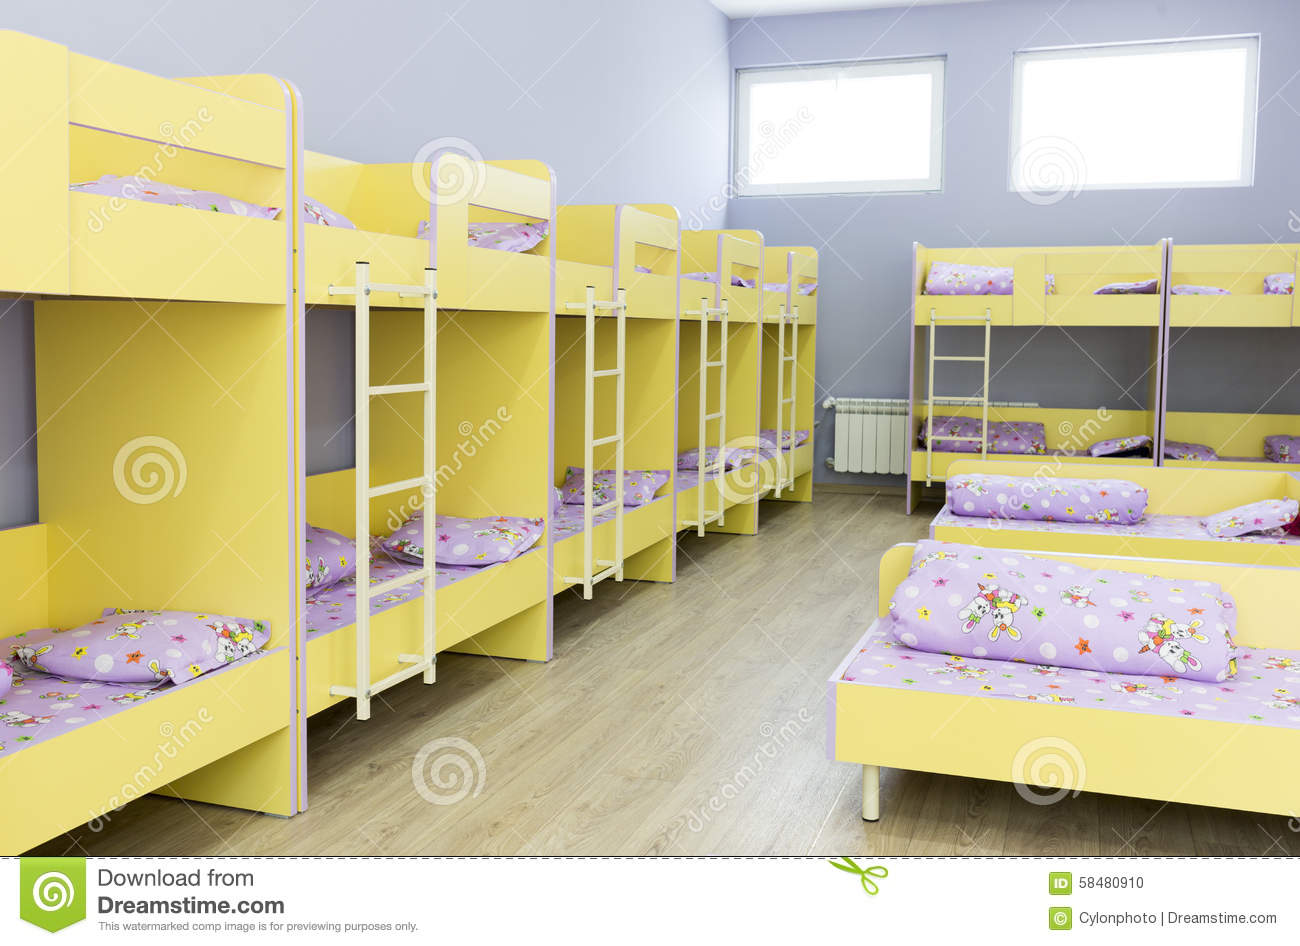 chambre coucher moderne de jardin d 39 enfants avec de petits lits photo stock image du inside. Black Bedroom Furniture Sets. Home Design Ideas